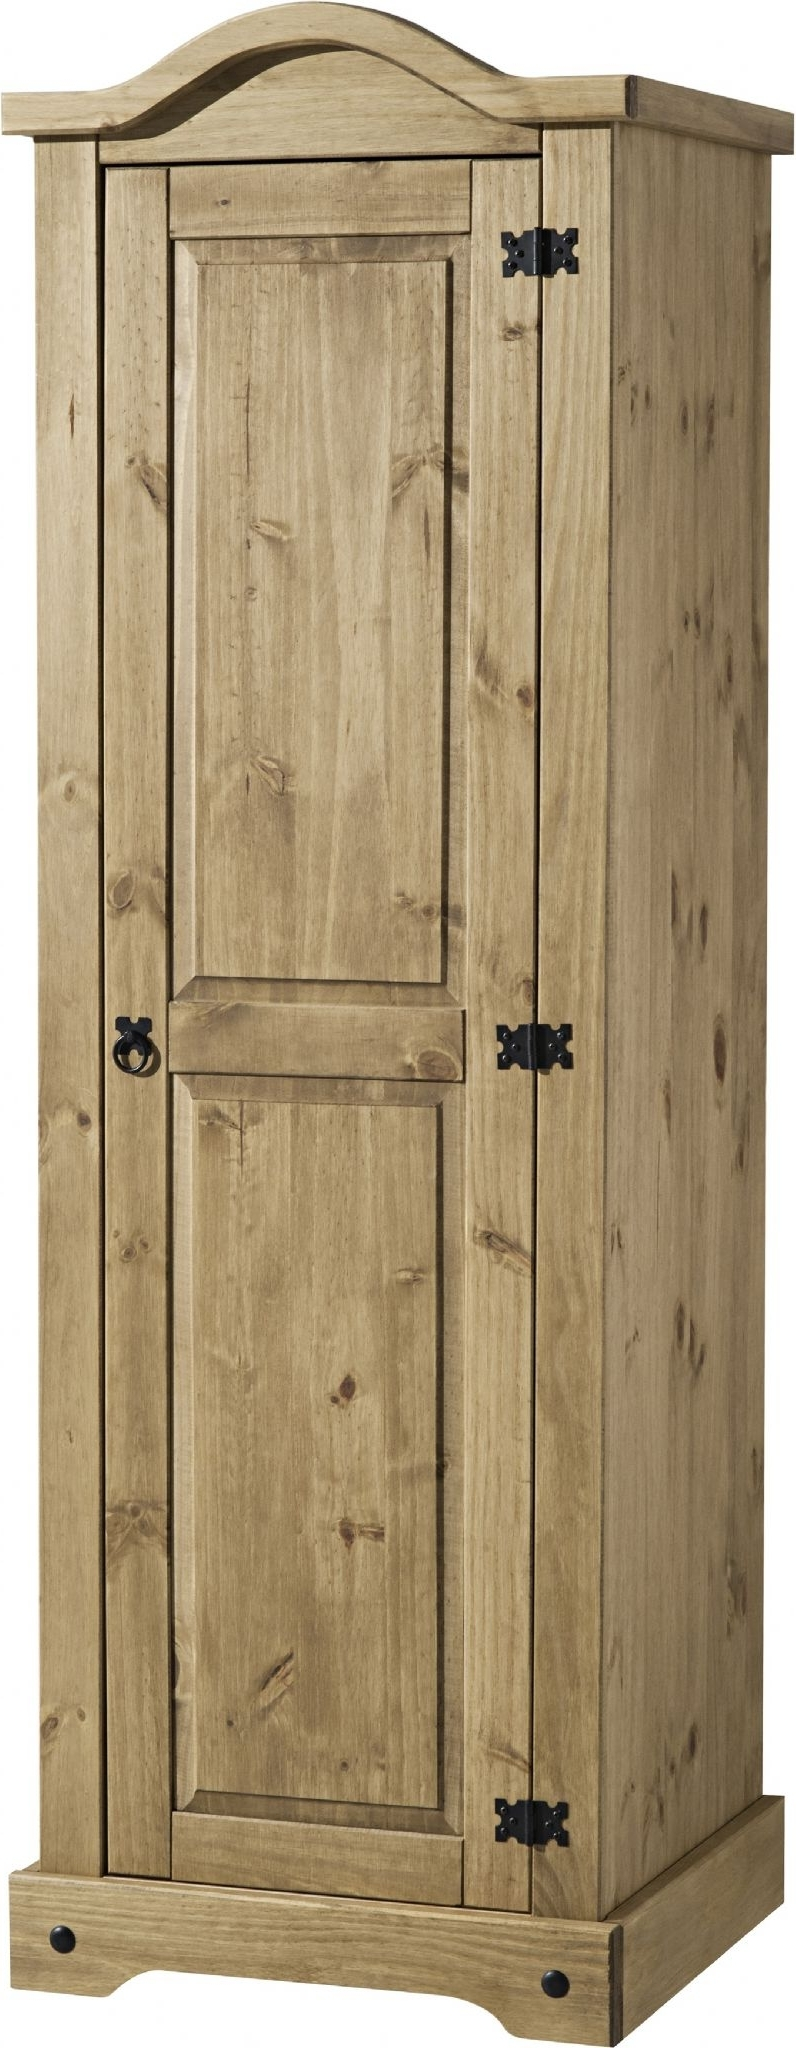 Corona Single One Mirrored Door 1 Drawer Armoire Wardrobe Within 2018 Pine Single Wardrobes (View 2 of 15)